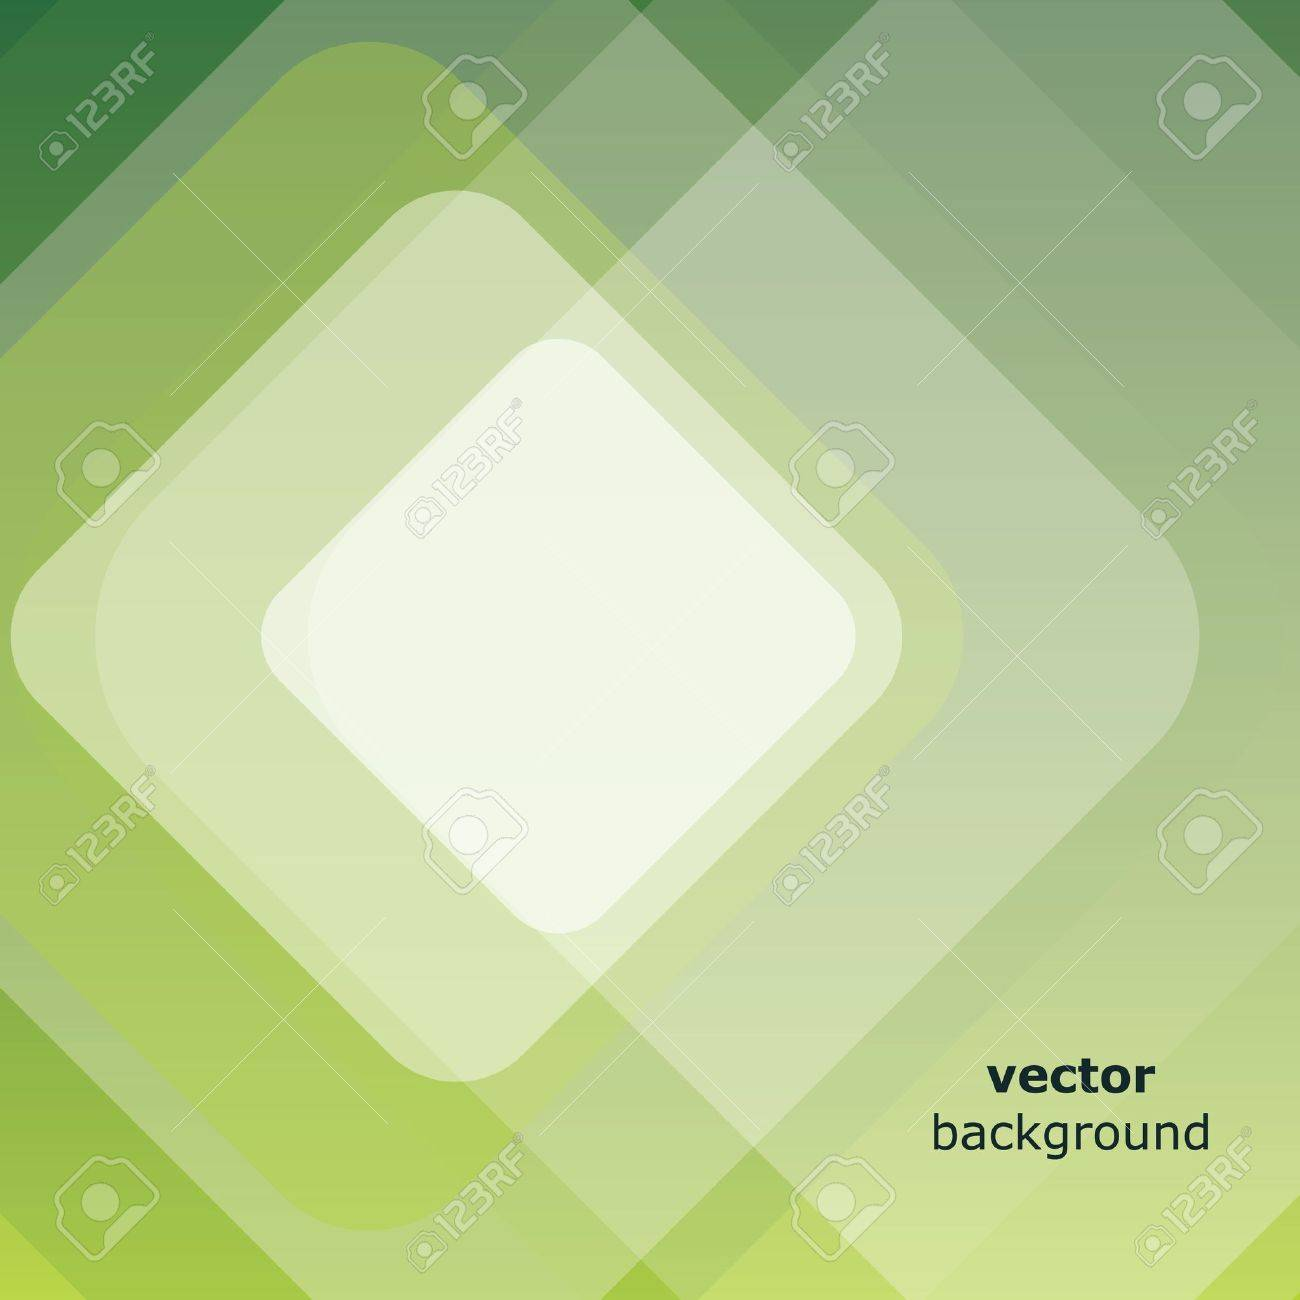 Abstract Background Vector Stock Vector - 11310064